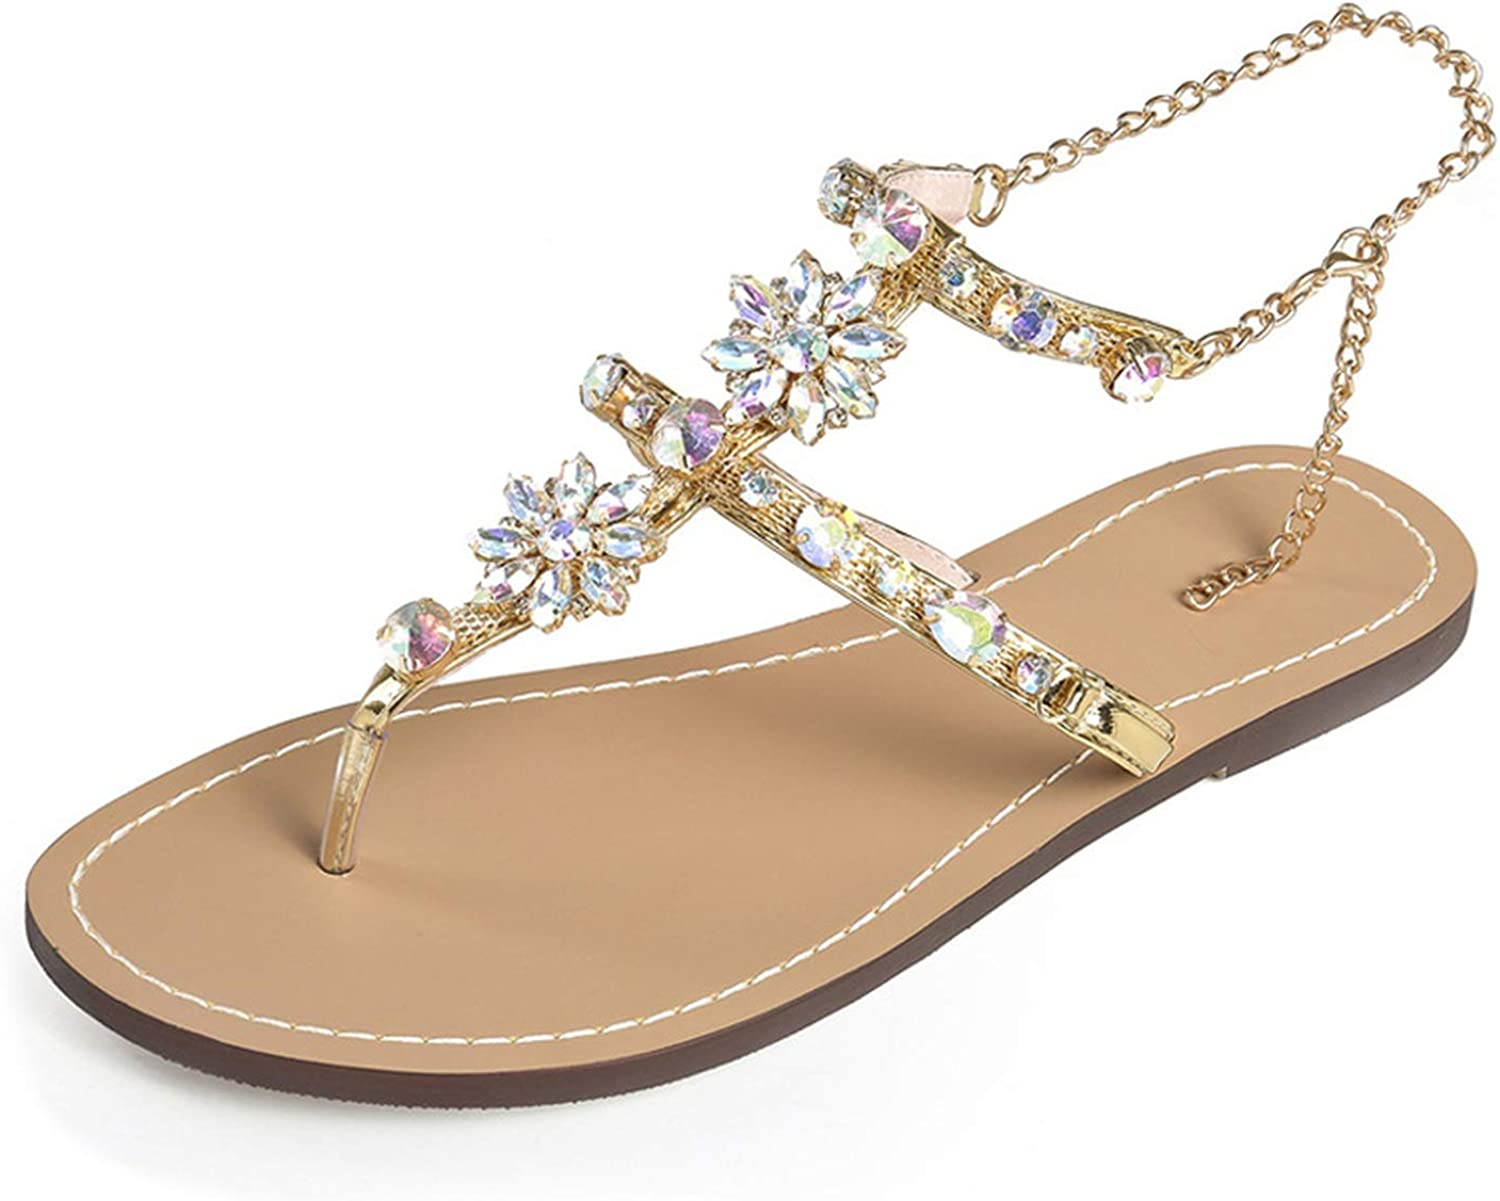 Heat-Tracing Summer Women Chains Thong Gladiator Flat Sandals Crystal Fashion Rome Flip Flops Sandals